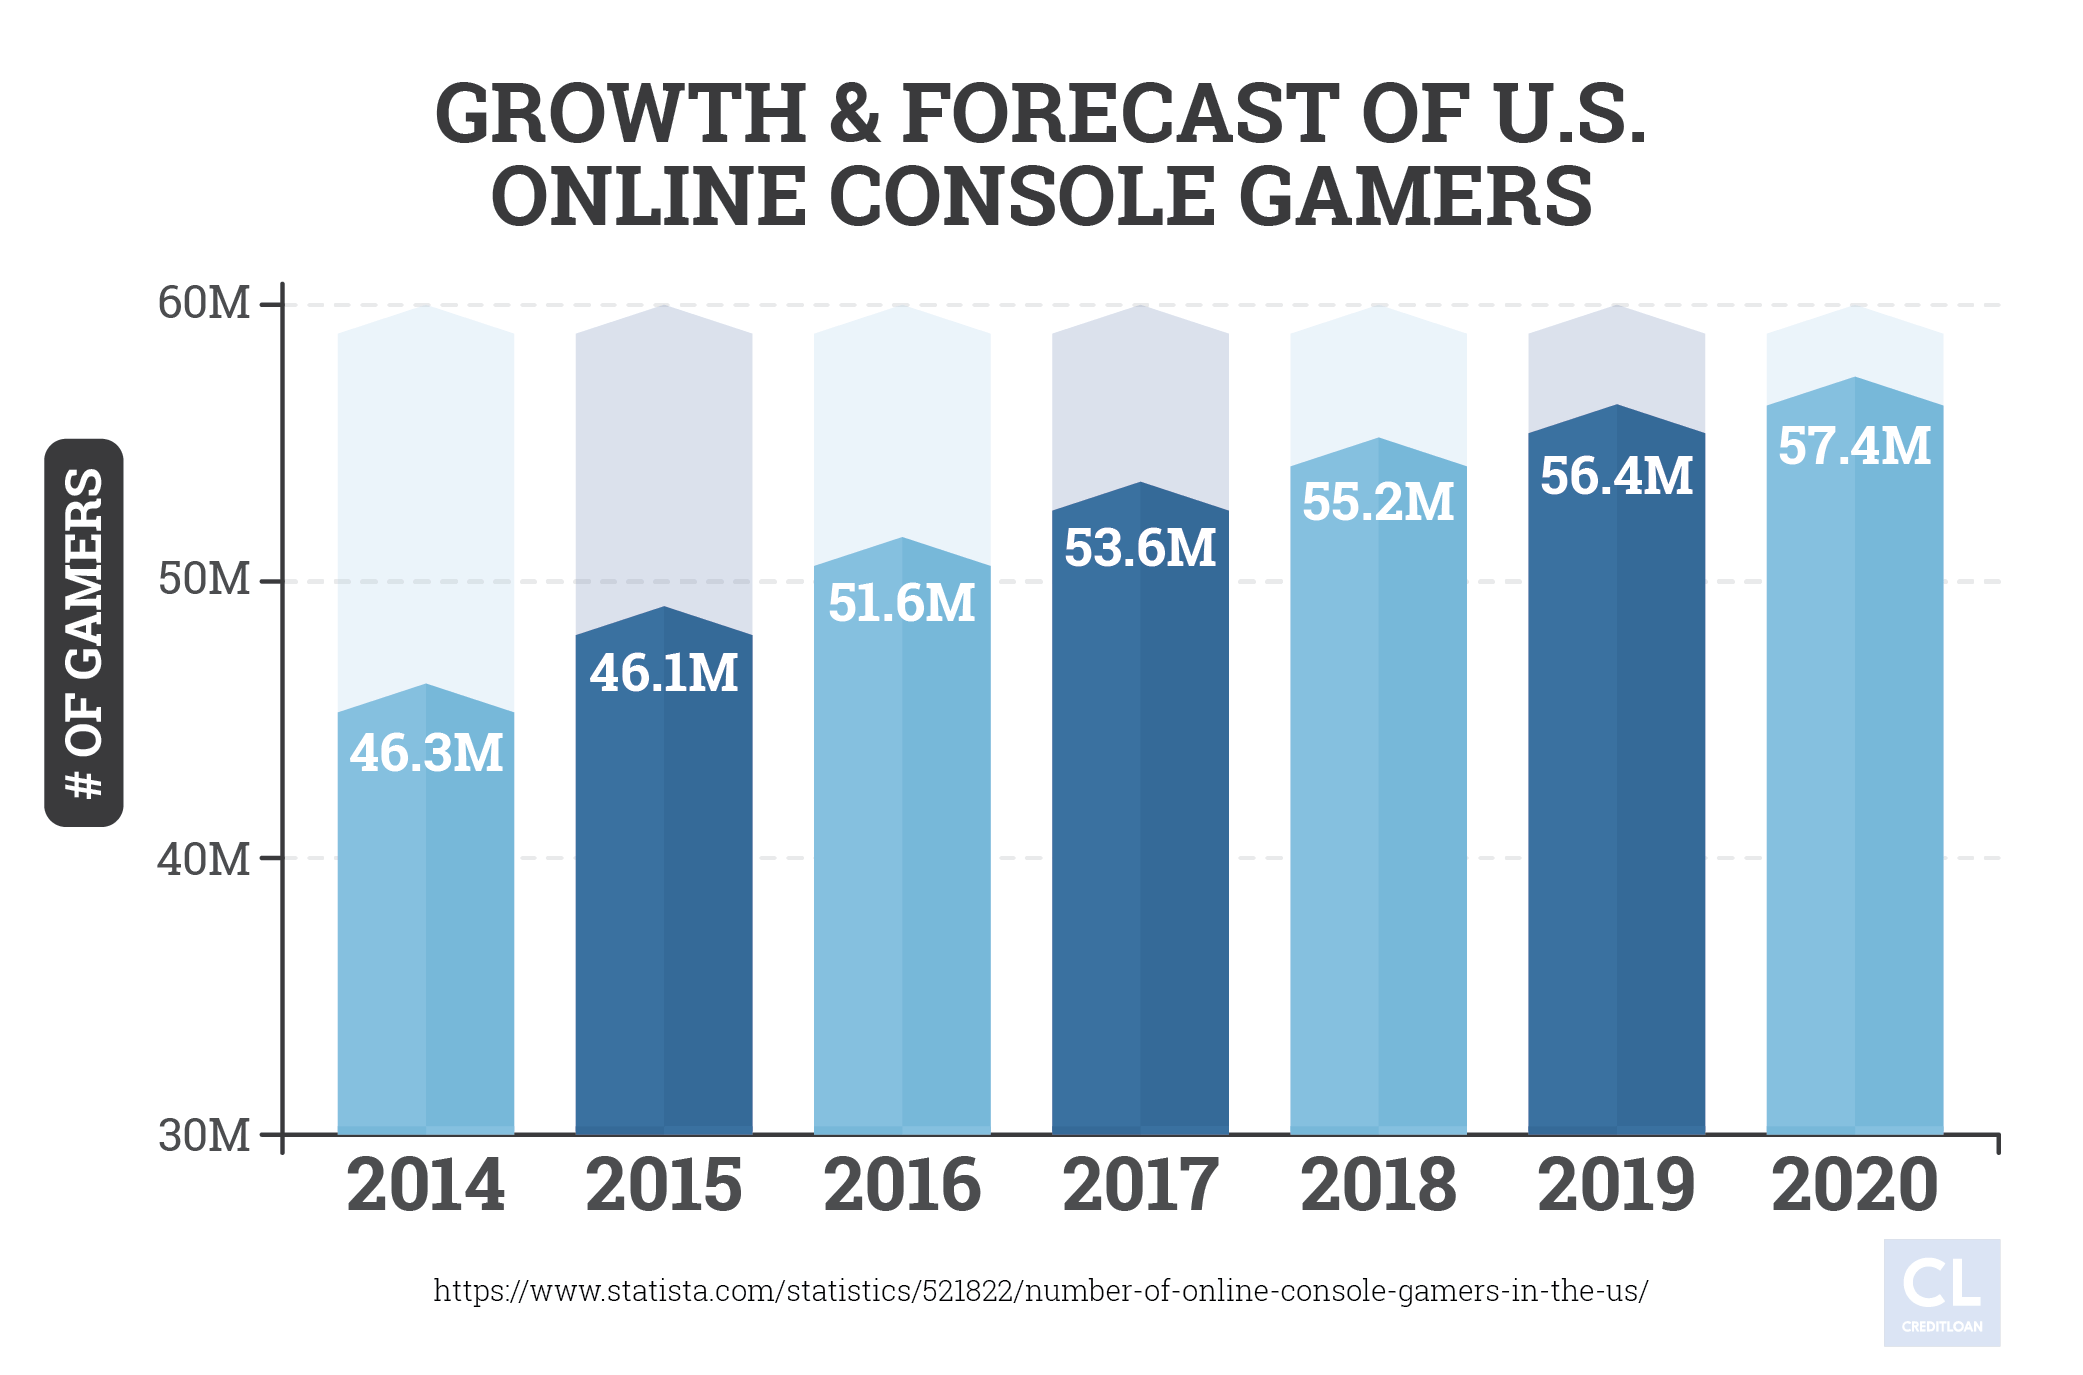 Growth & Forecast of U.S. Online Console Gamers 2014-2020